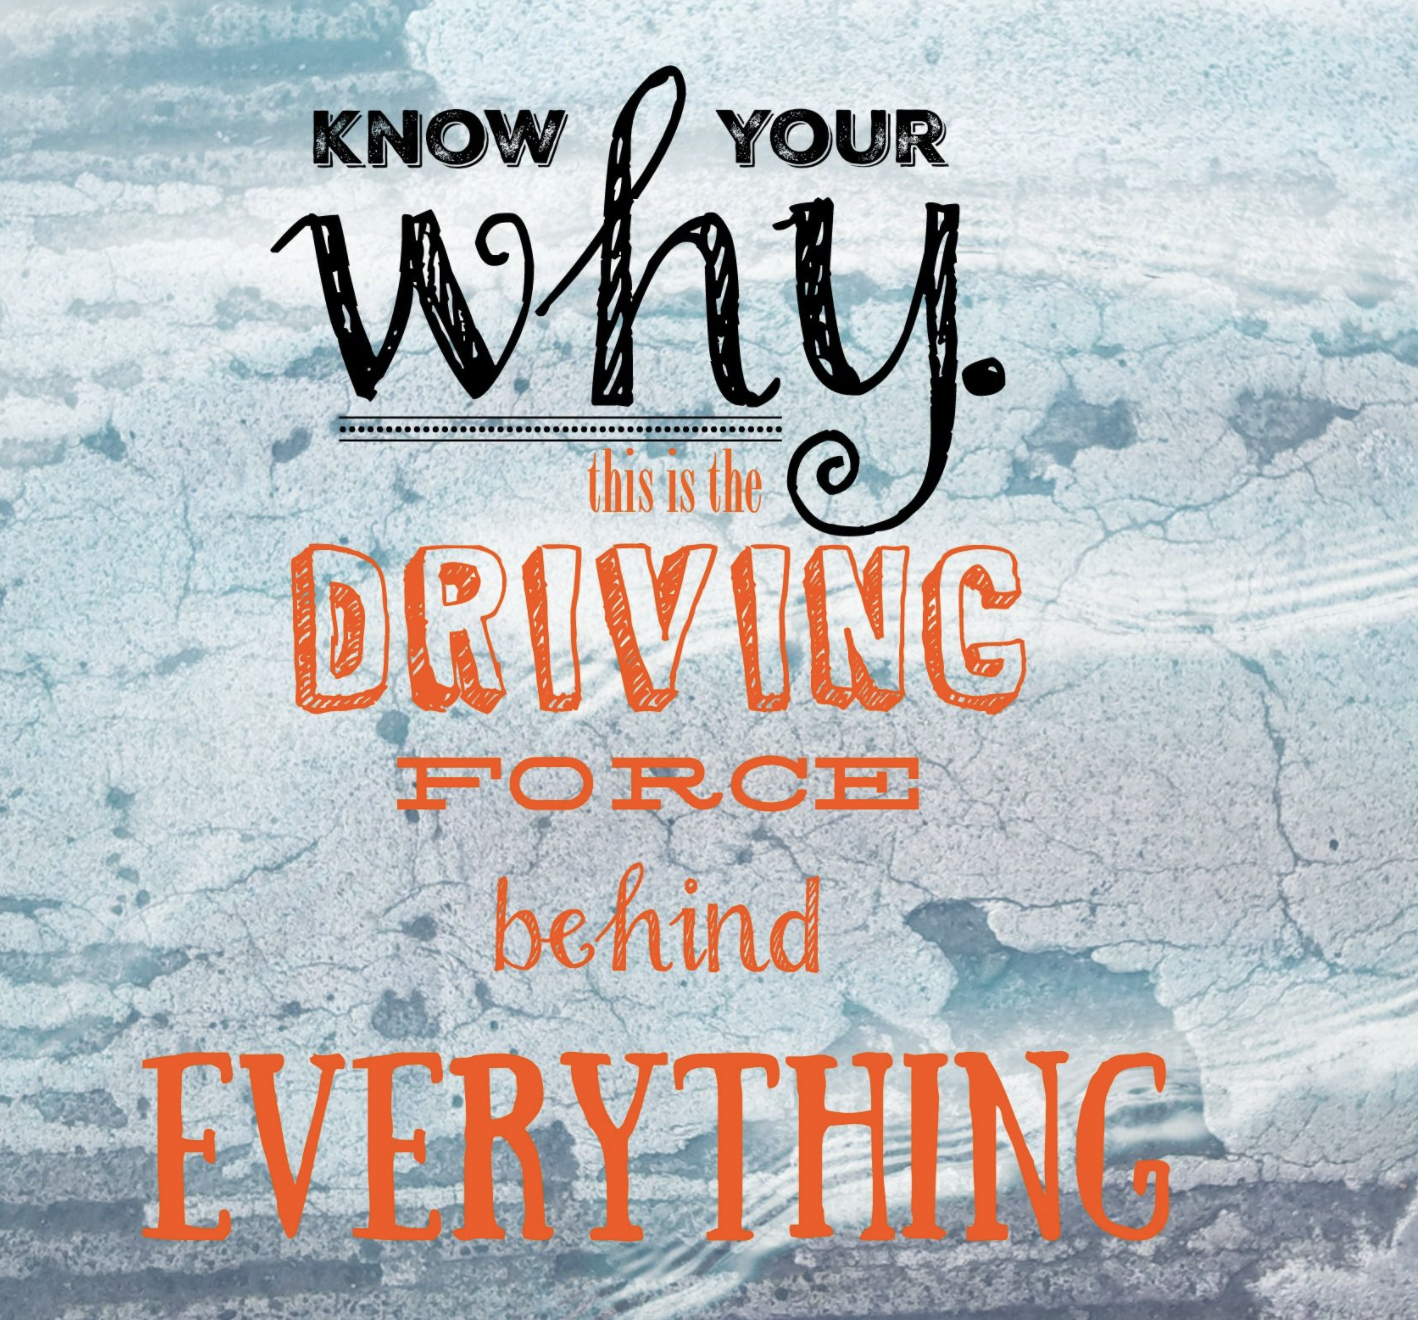 [Image] Know your why, because this is the driving force behind everything.